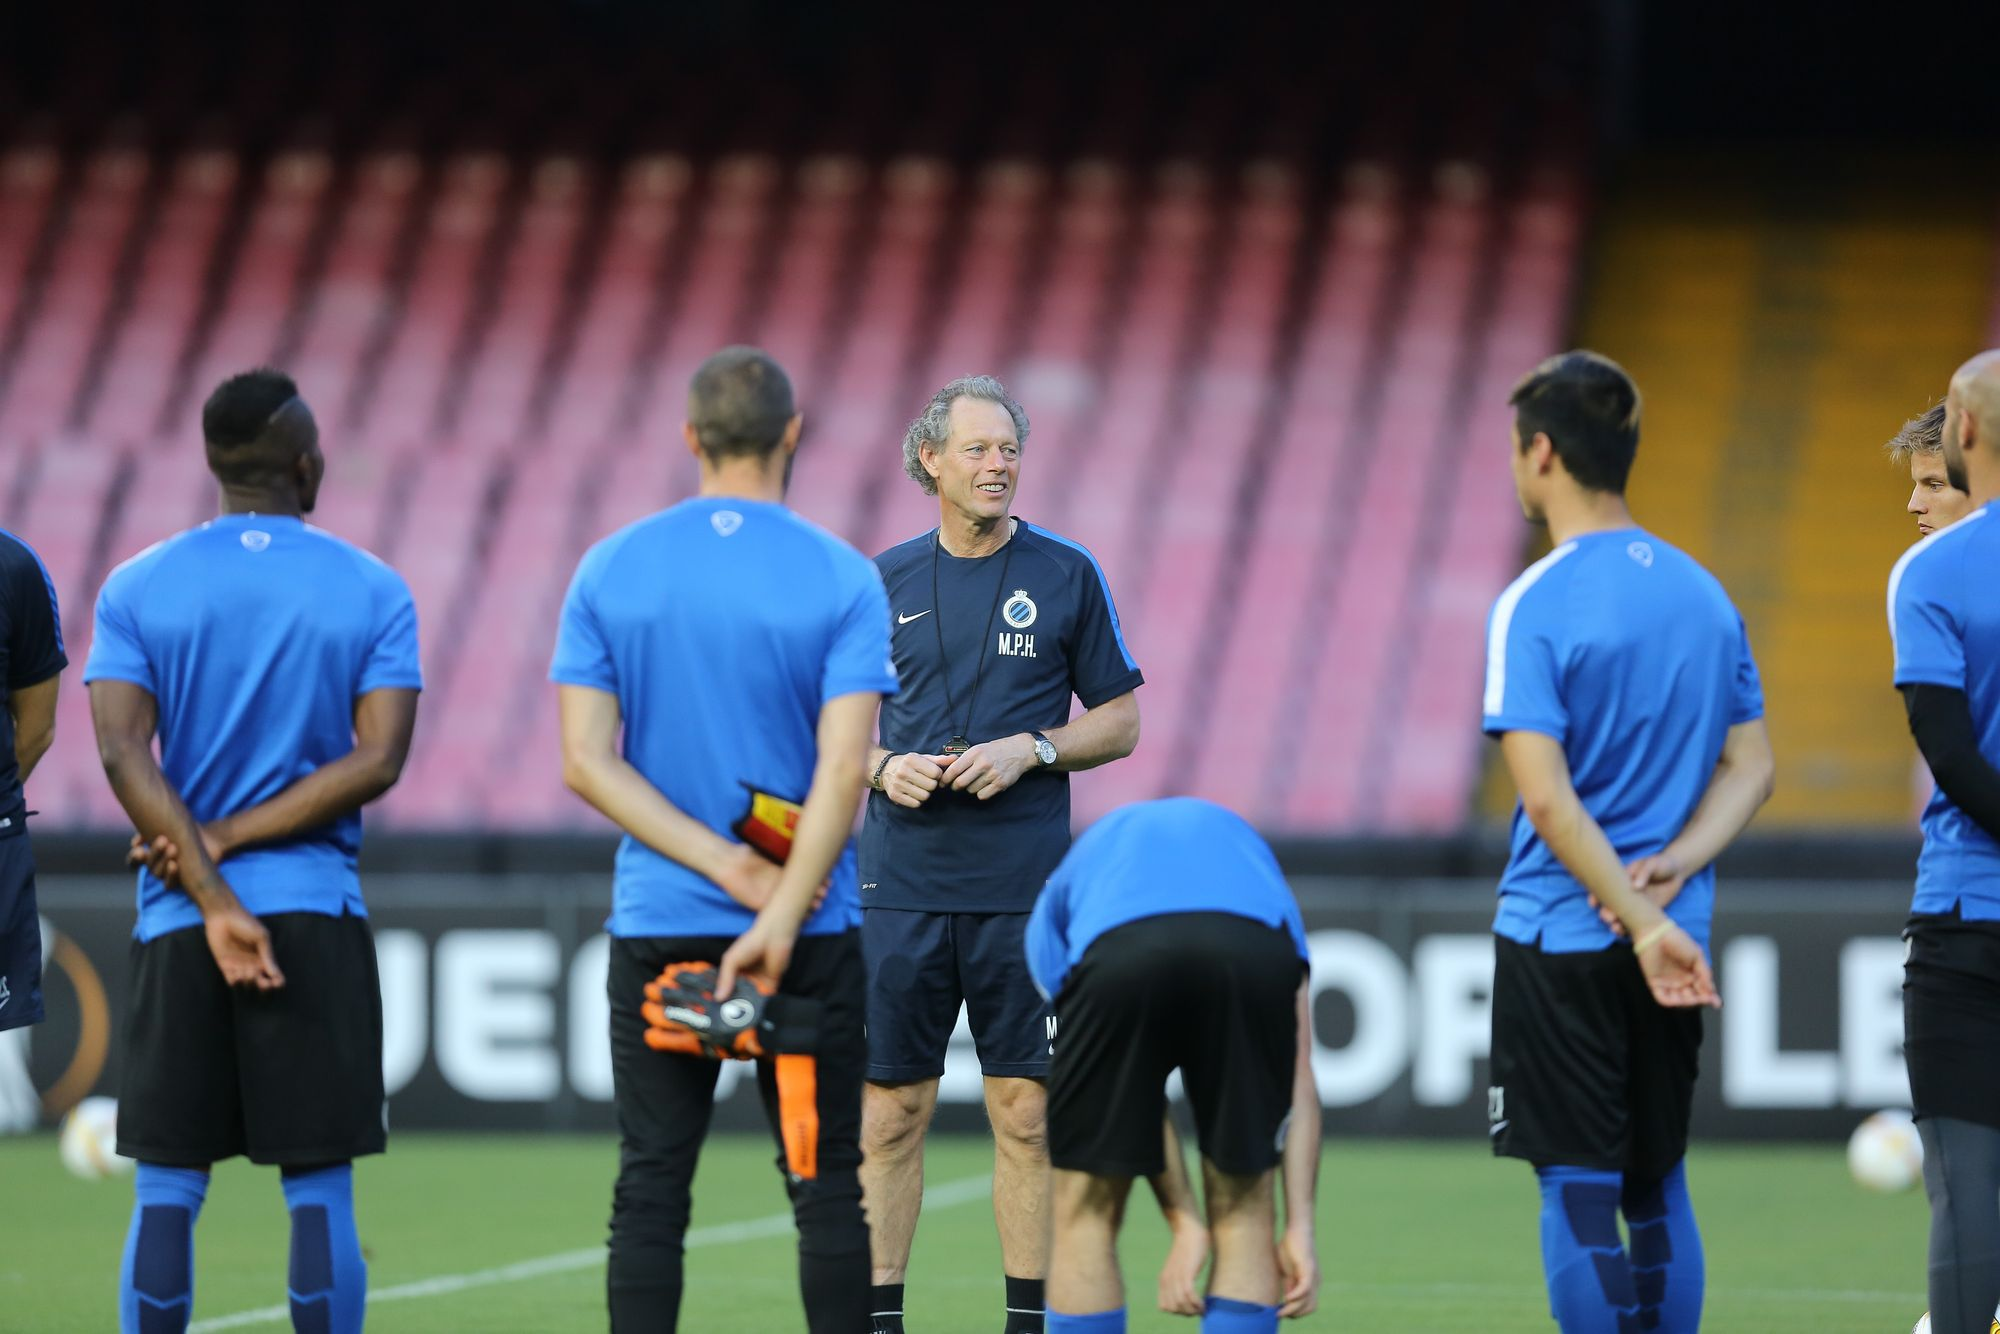 20150916 - NAPLES, ITALY: Club's head coach Michel Preud'homme pictured during a training session in San Paolo stadium in Naples, Italy, Wednesday 16 September 2015. Tomorrow first league soccer club Club Brugge will play the first game in the group stage of the Uefa Europa League competition against Italian club SSC Napoli, in the group D. BELGA PHOTO BRUNO FAHY